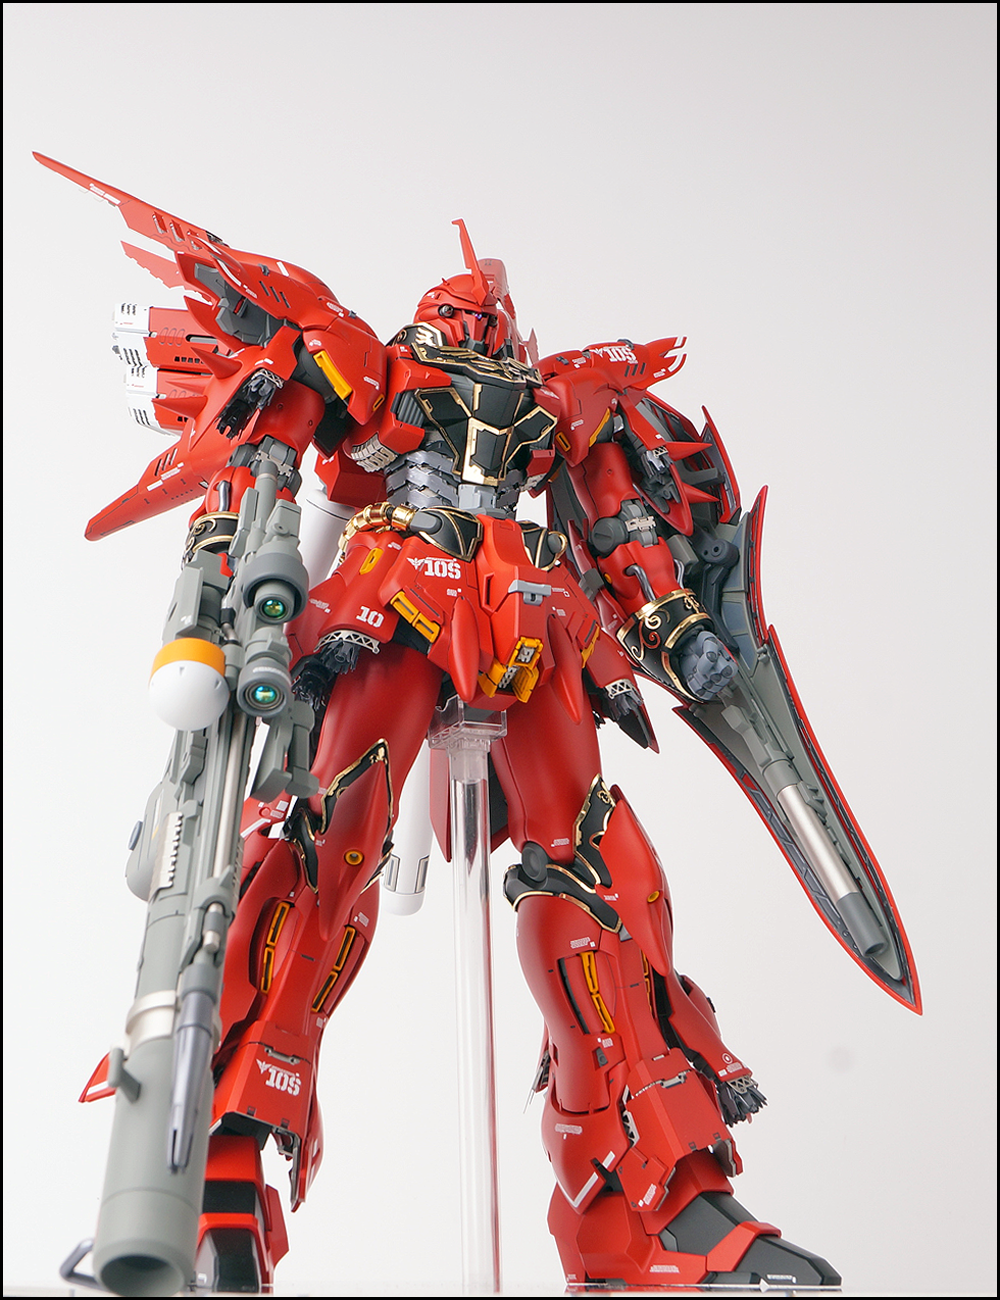 GUNDAM GUY: MG 1/100 Sinanju - Customized Build